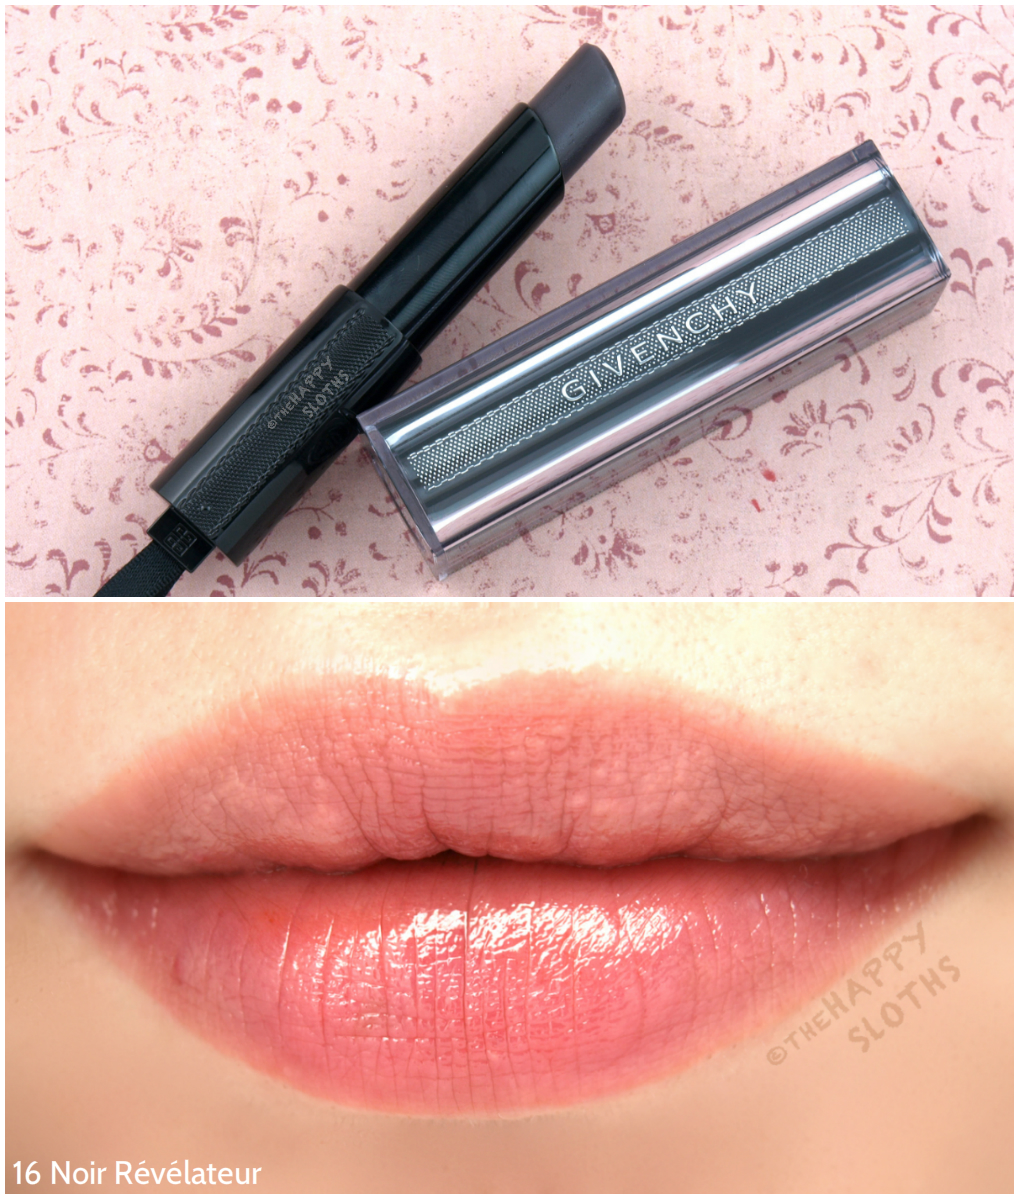 Givenchy Rouge Interdit Vinyl Color Enhancing Lipstick 16 Noir Revelateur Review and Swatches